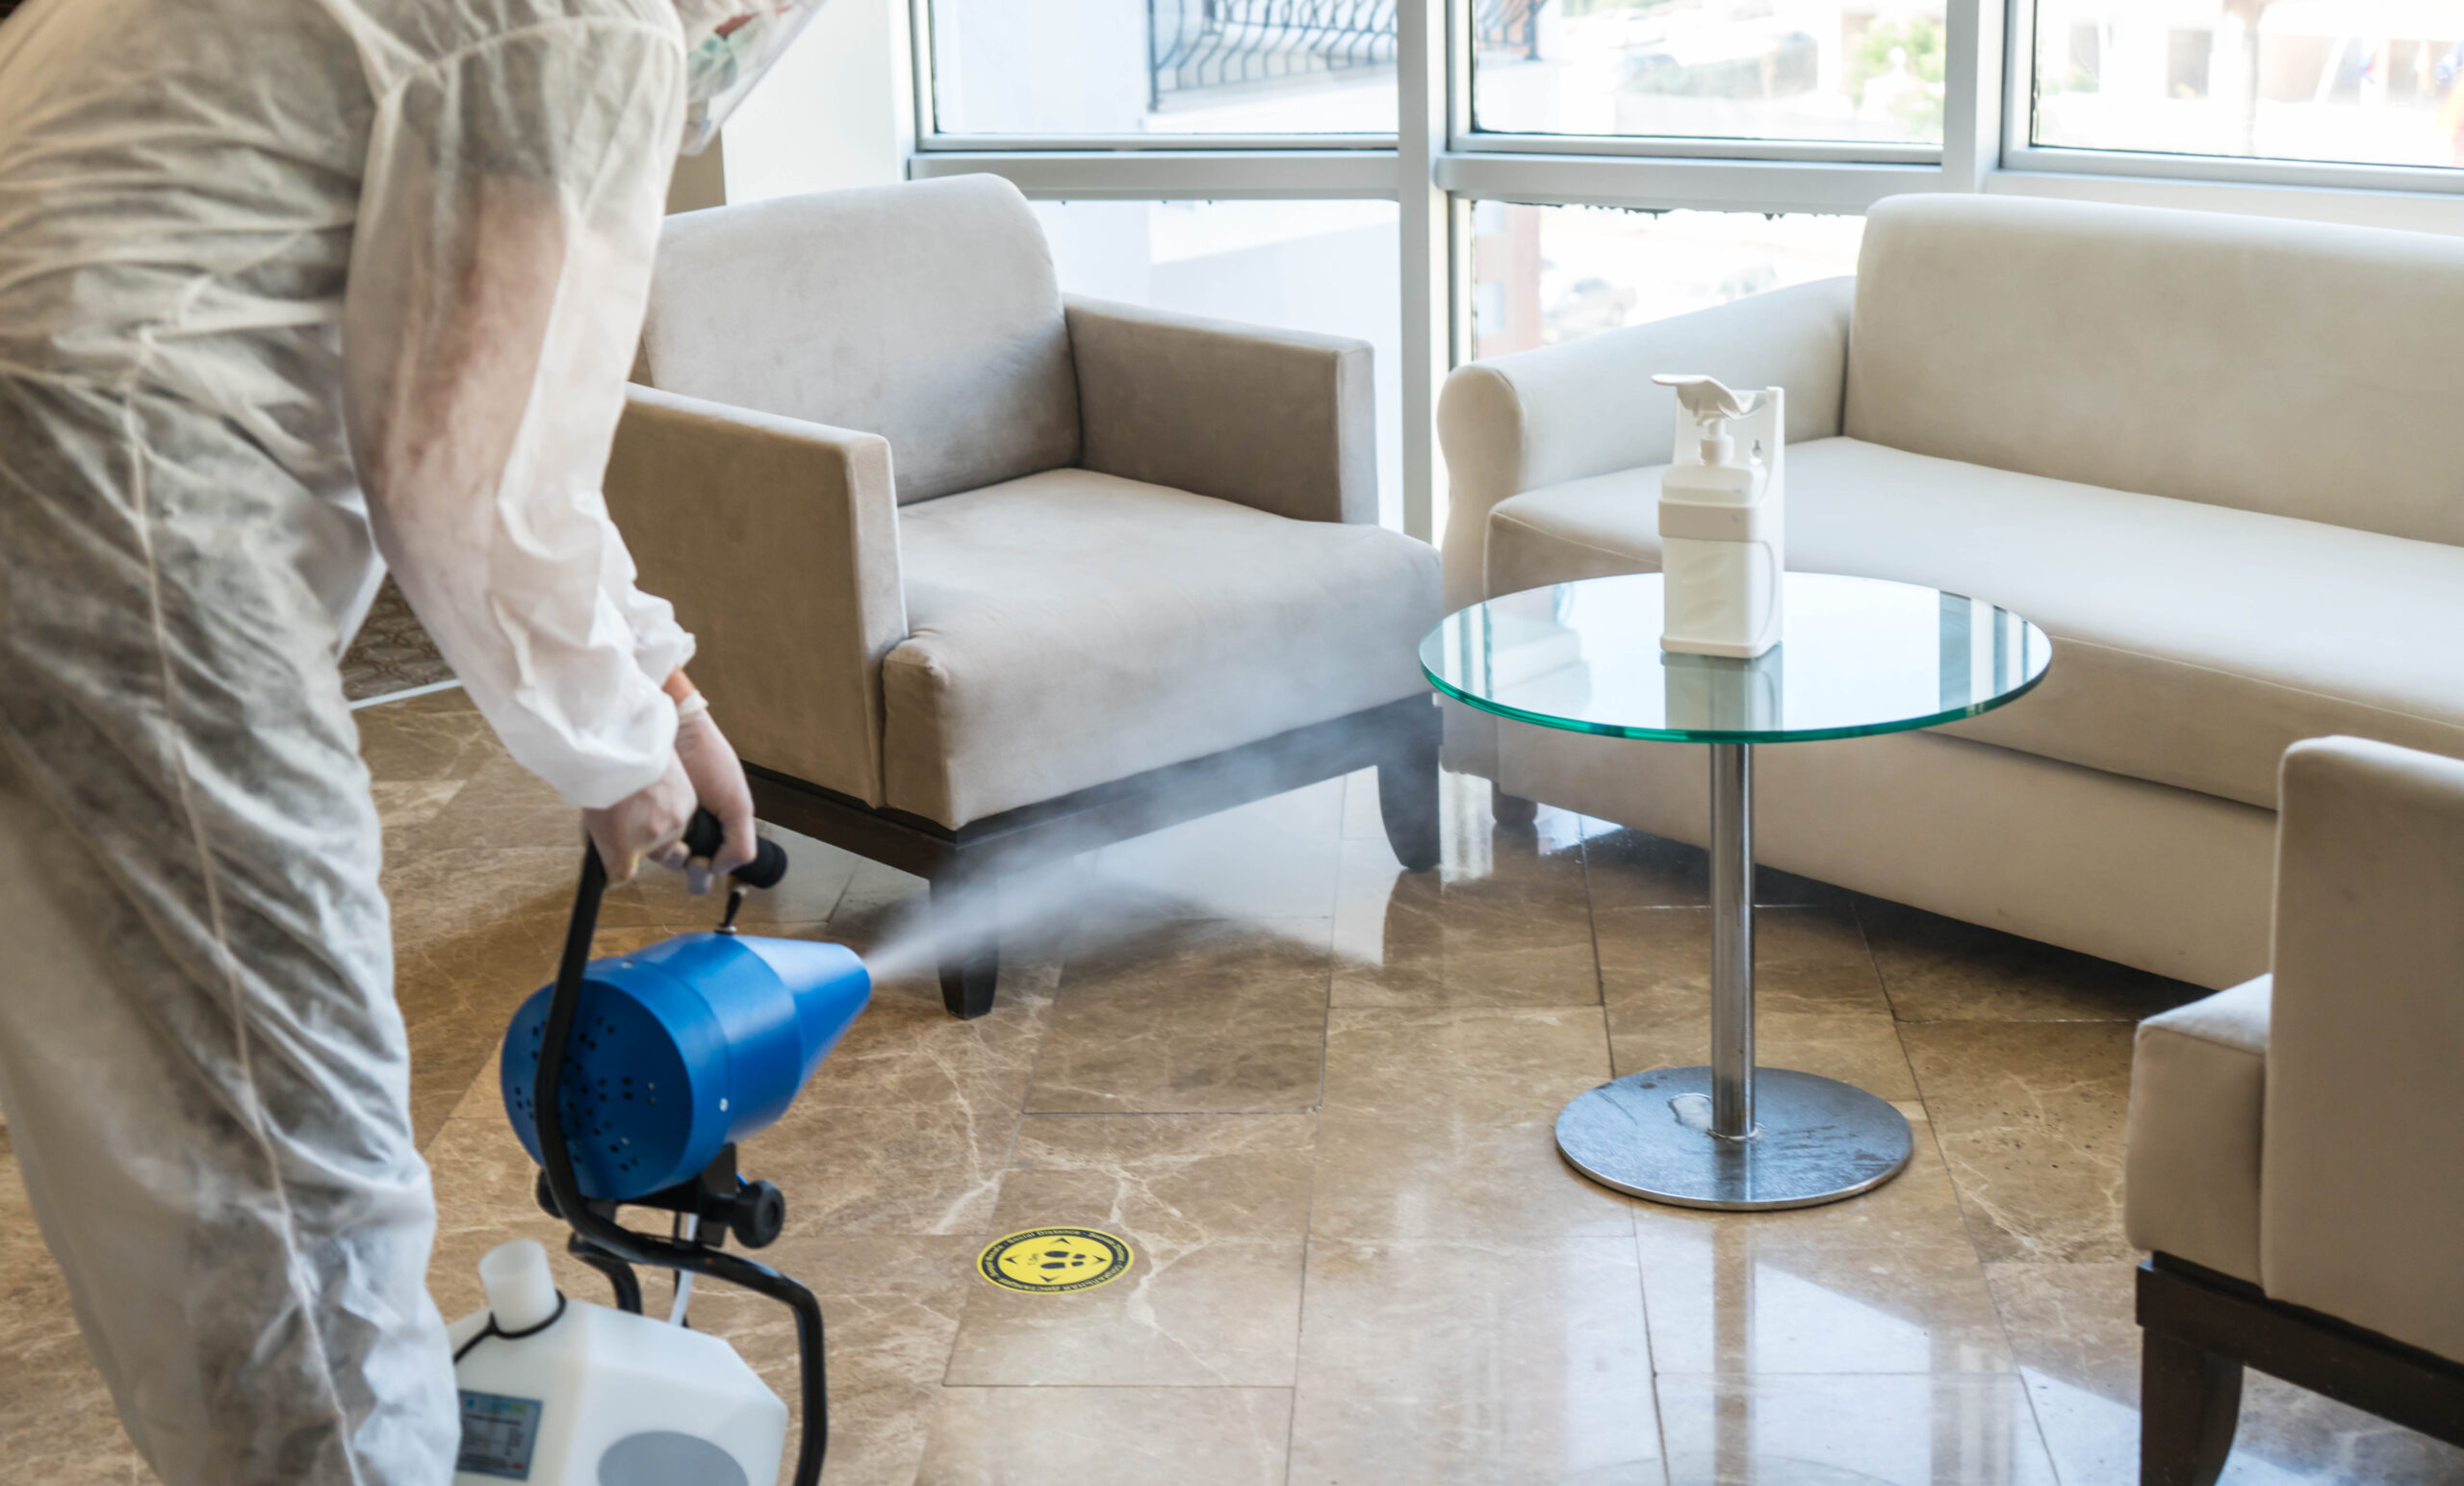 Don't Become Another Disinfectant Fogging Victim